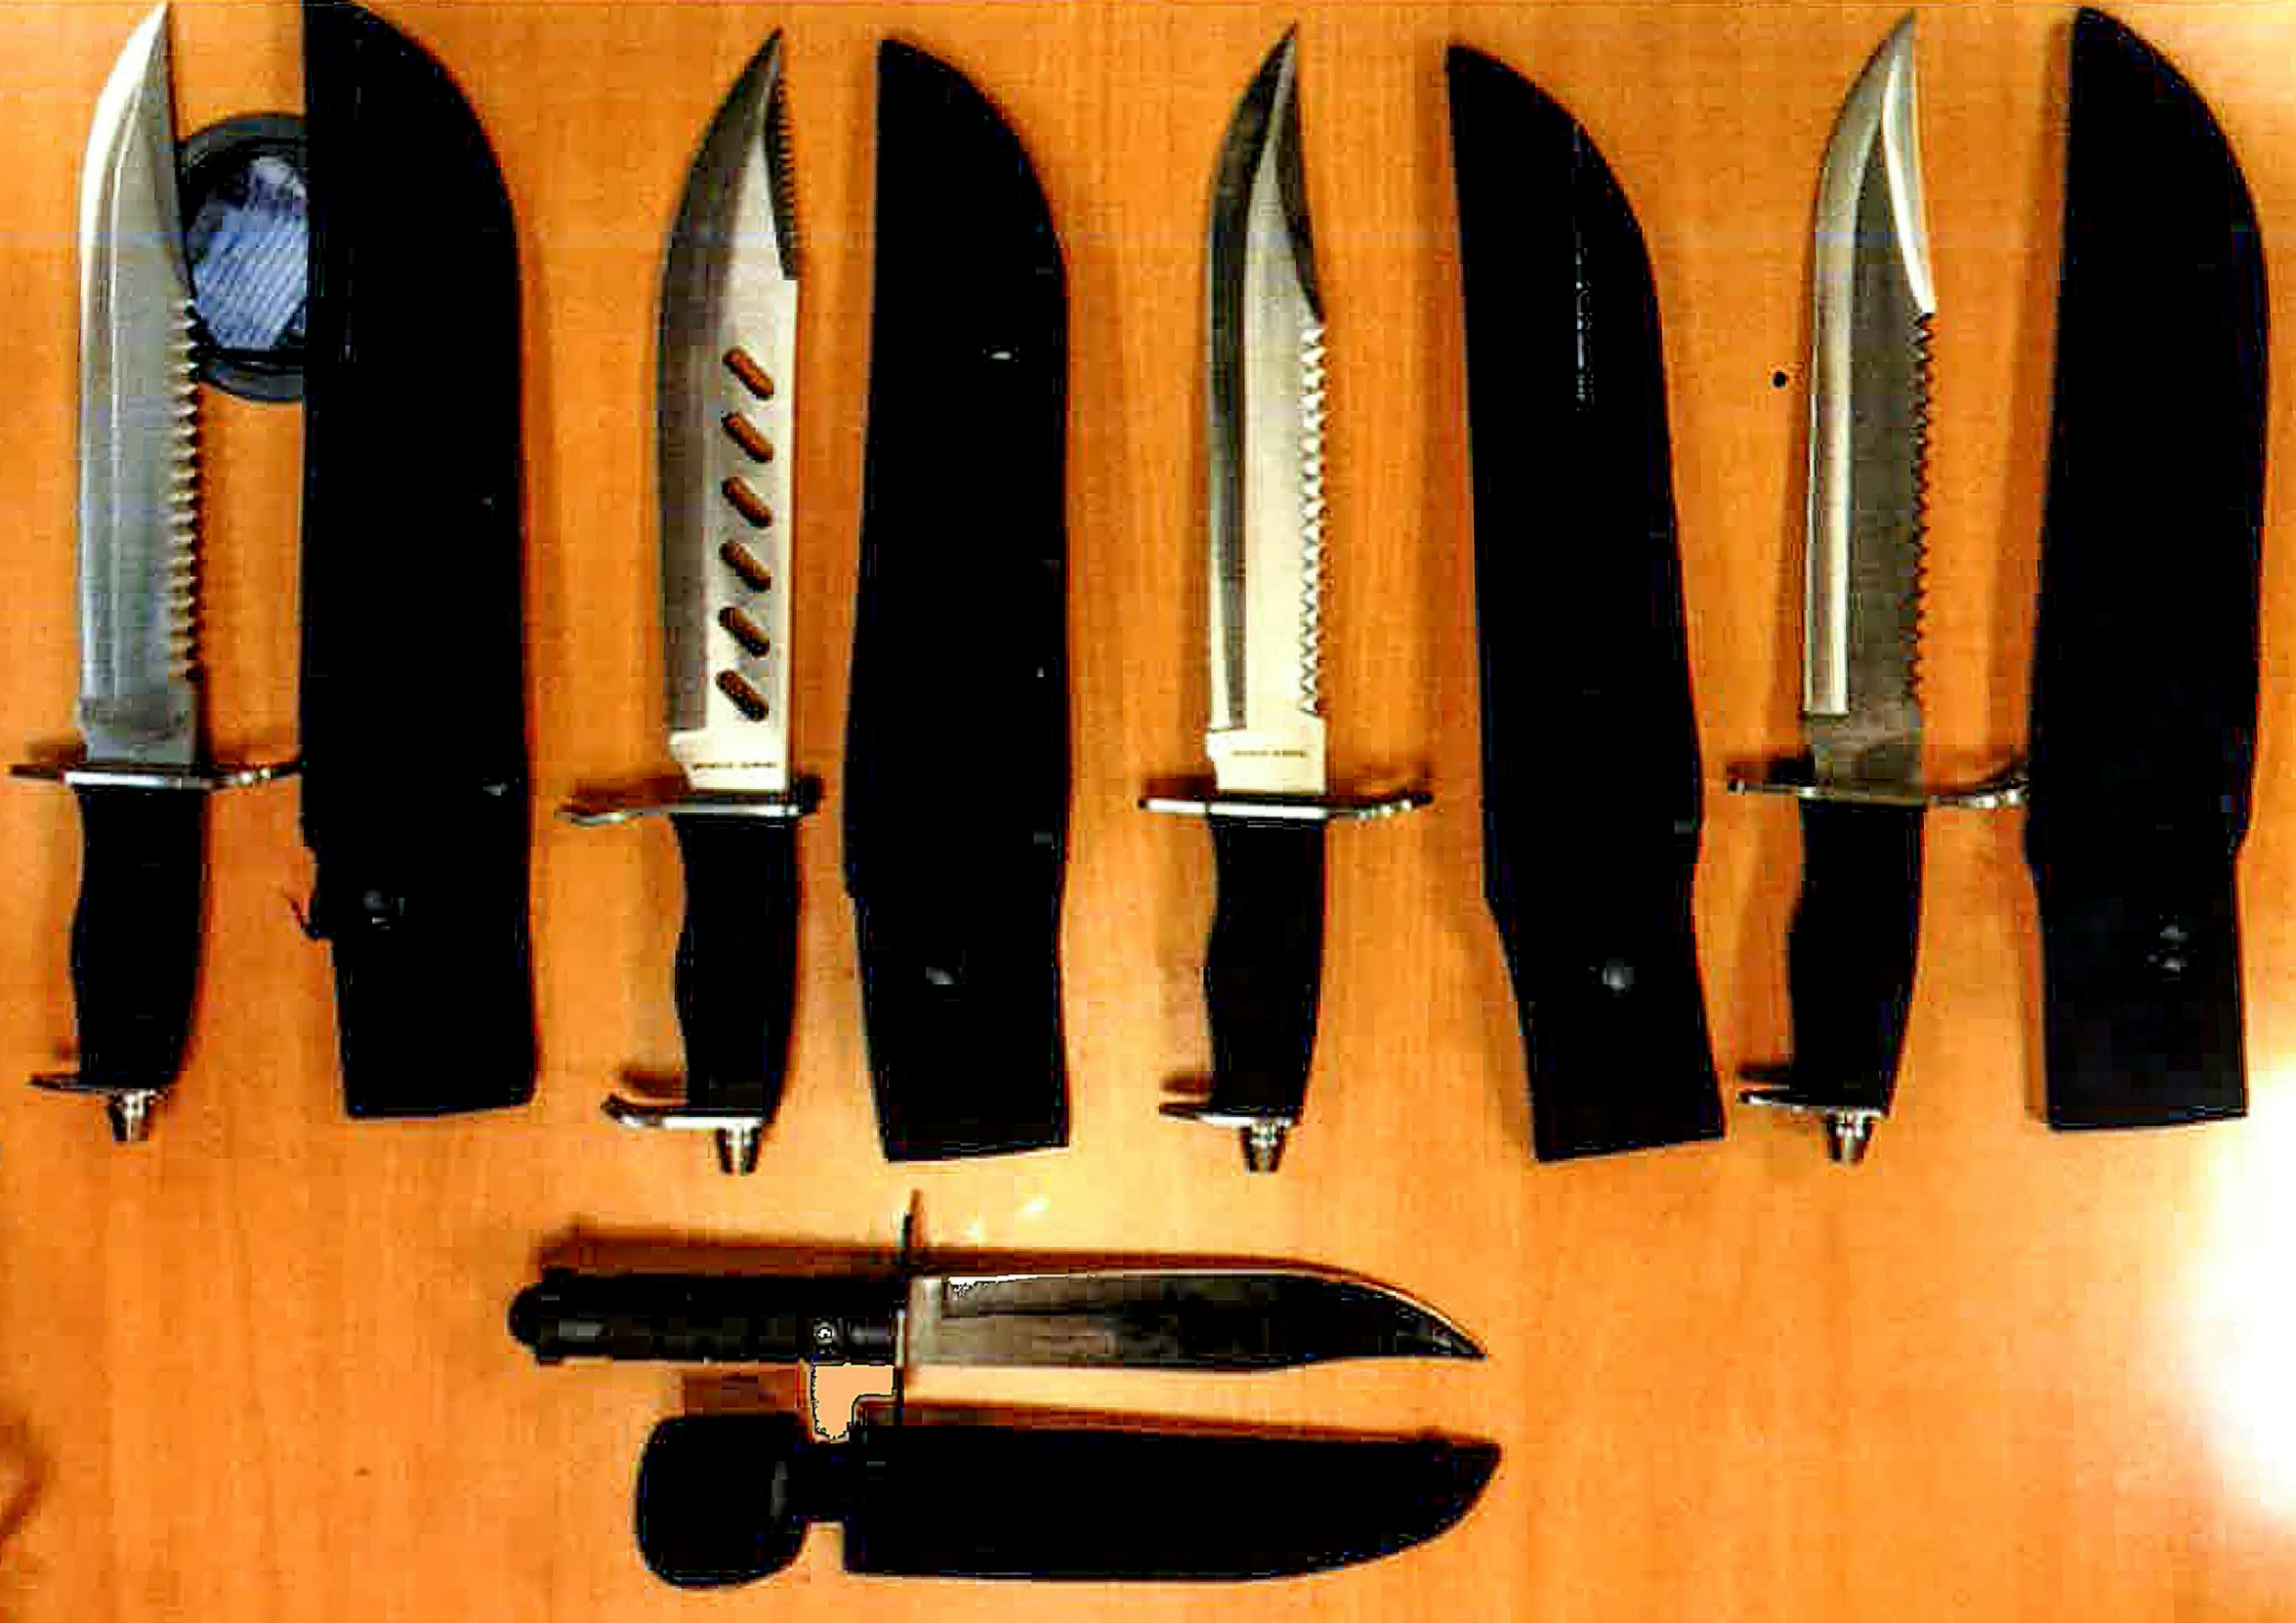 This is the shocking picture that shows the scale of knife crime as police found all five of these deadly combat knives being carried by just one 14 year old boy. See NATIONAL story NNknives. Yet the teen escaped custody, instead being referred to a youth offending panel and being ordered to pay a ?20 victim surcharge. Officers were called to Highbury Quadrant, a low rise estate in Islington north London after a concerned member of the public saw the boy brandishing a knife one Sunday afternoon last month. The boy, who cannot be named for legal reasons, was stopped and searched and police made their shocking discovery. The youth was arrested following the search at 2pm on January 13 and appeared at Highbury Corner youth court on January 29. He pleaded guilty to five counts of possession of an offensive weapon, namely a combat knife.